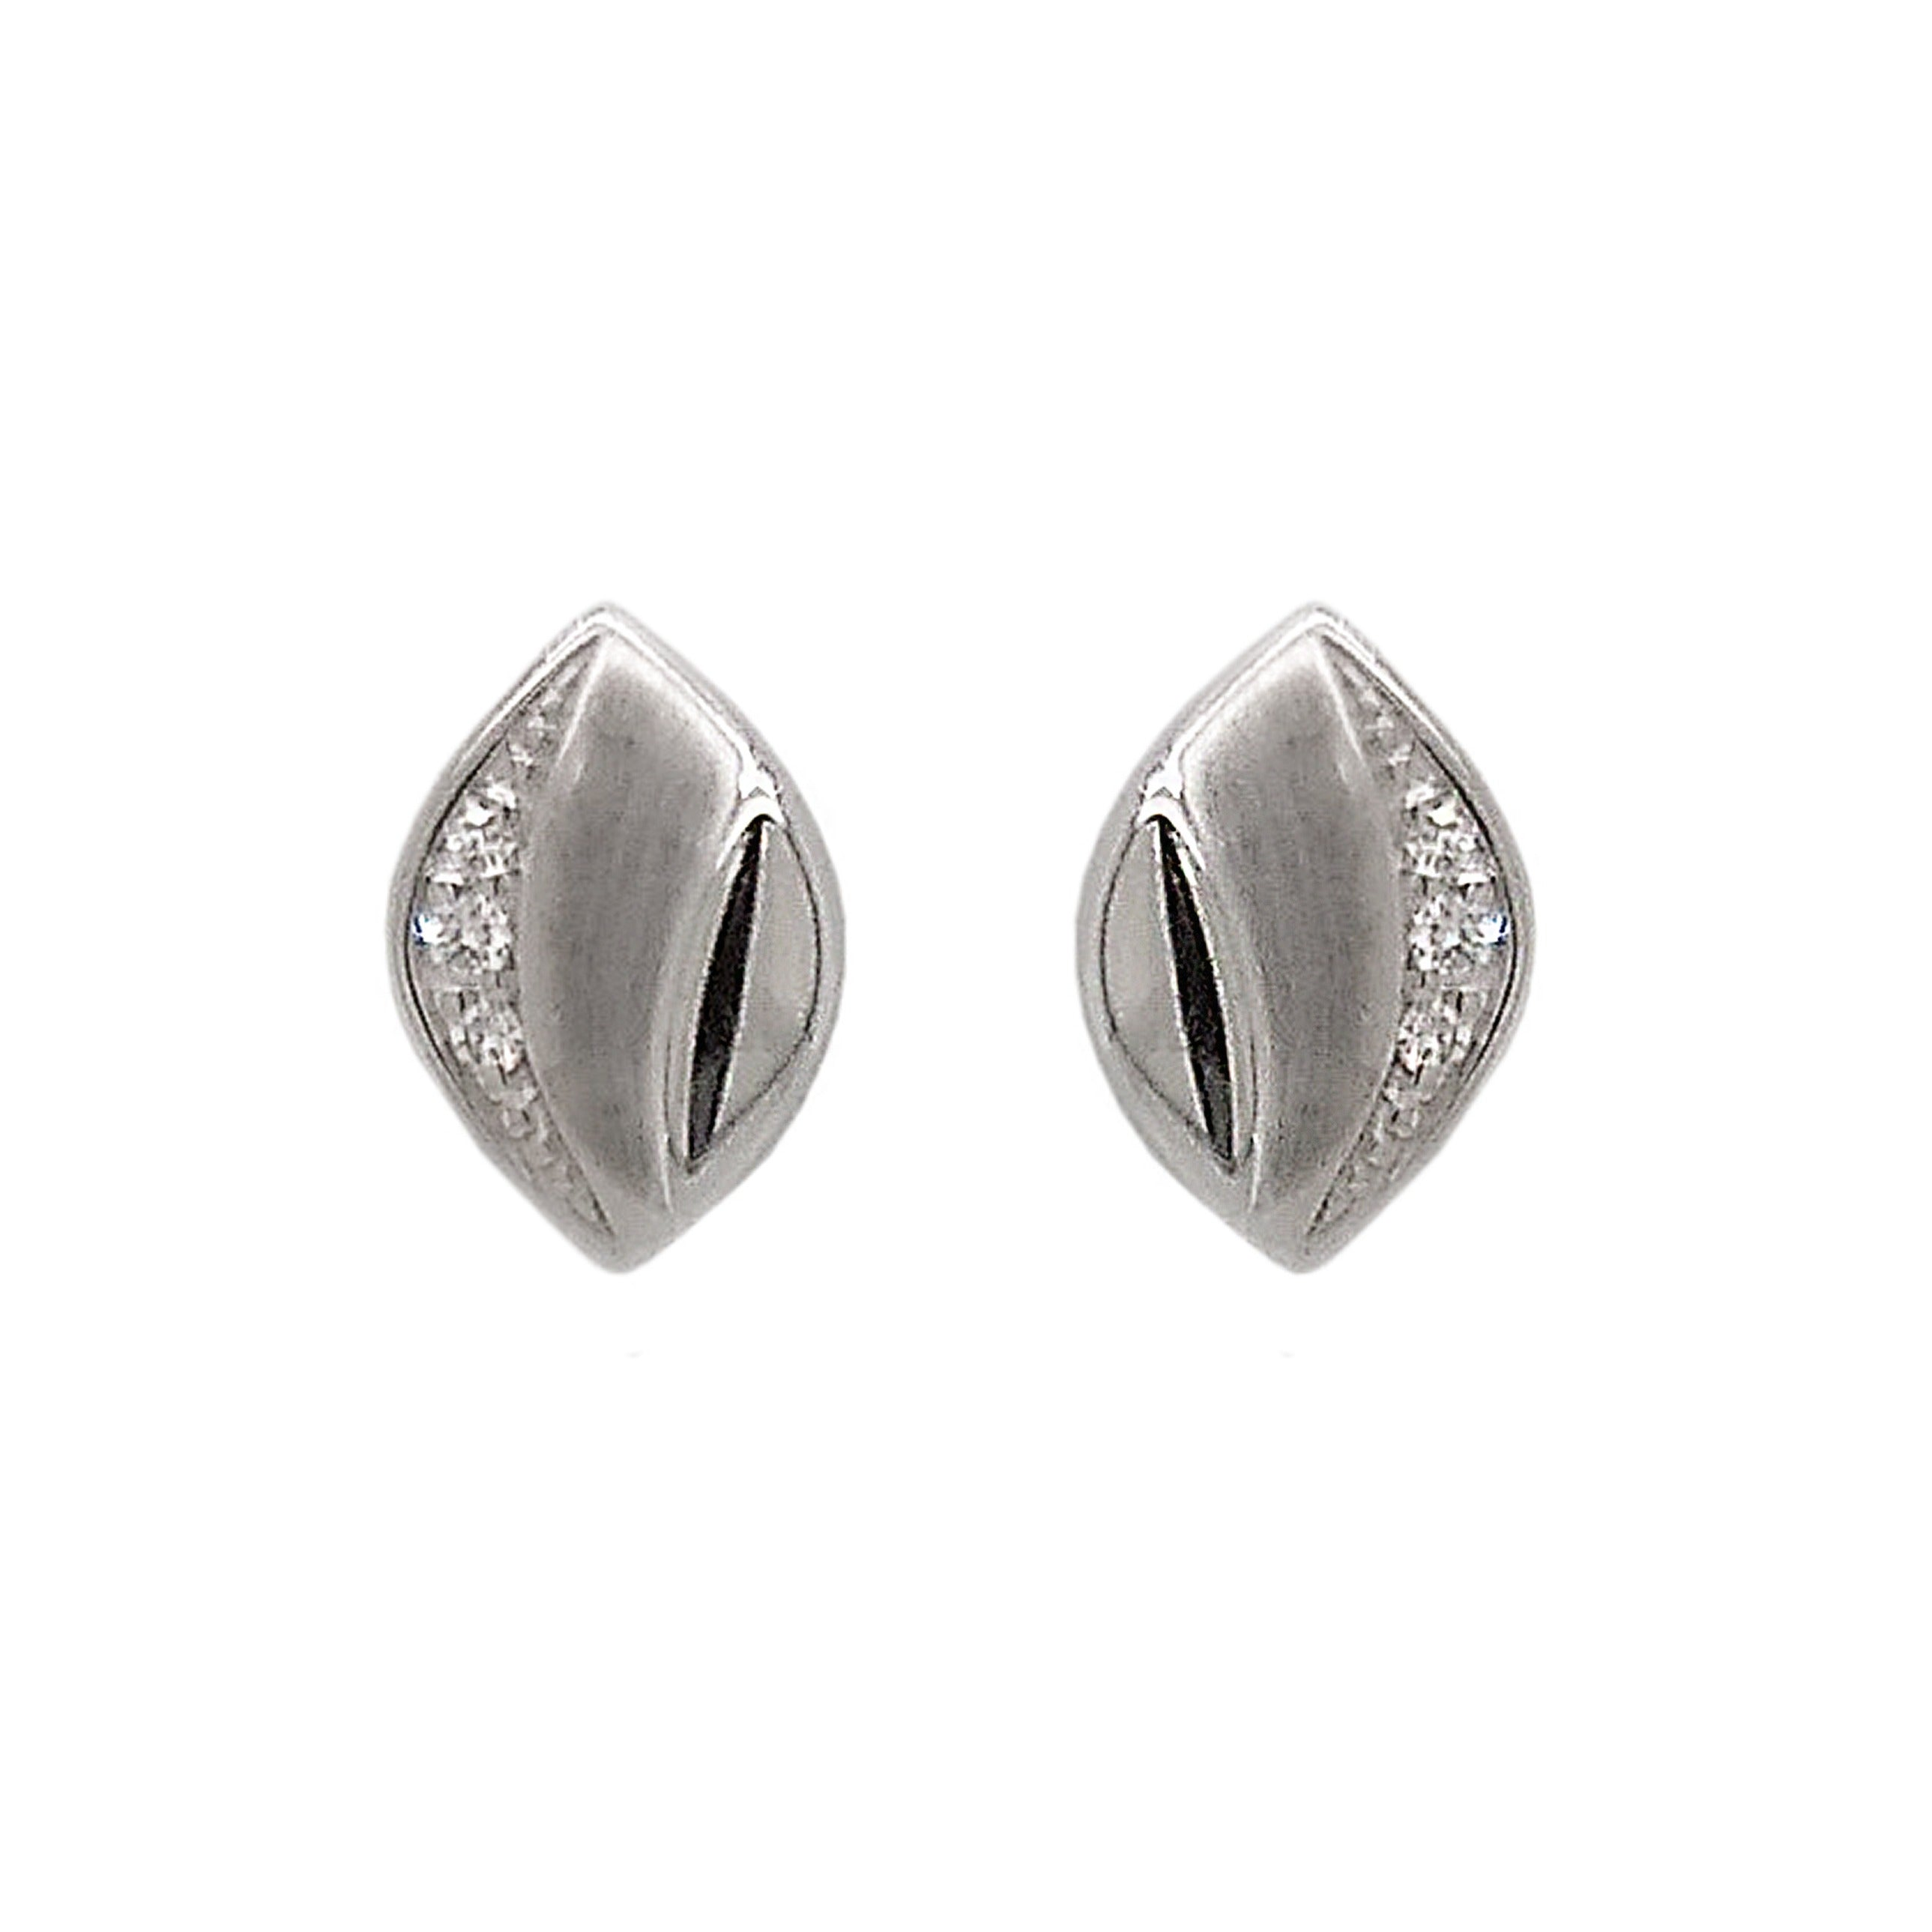 9ct White Gold Marquise Diamond Stud Earrings